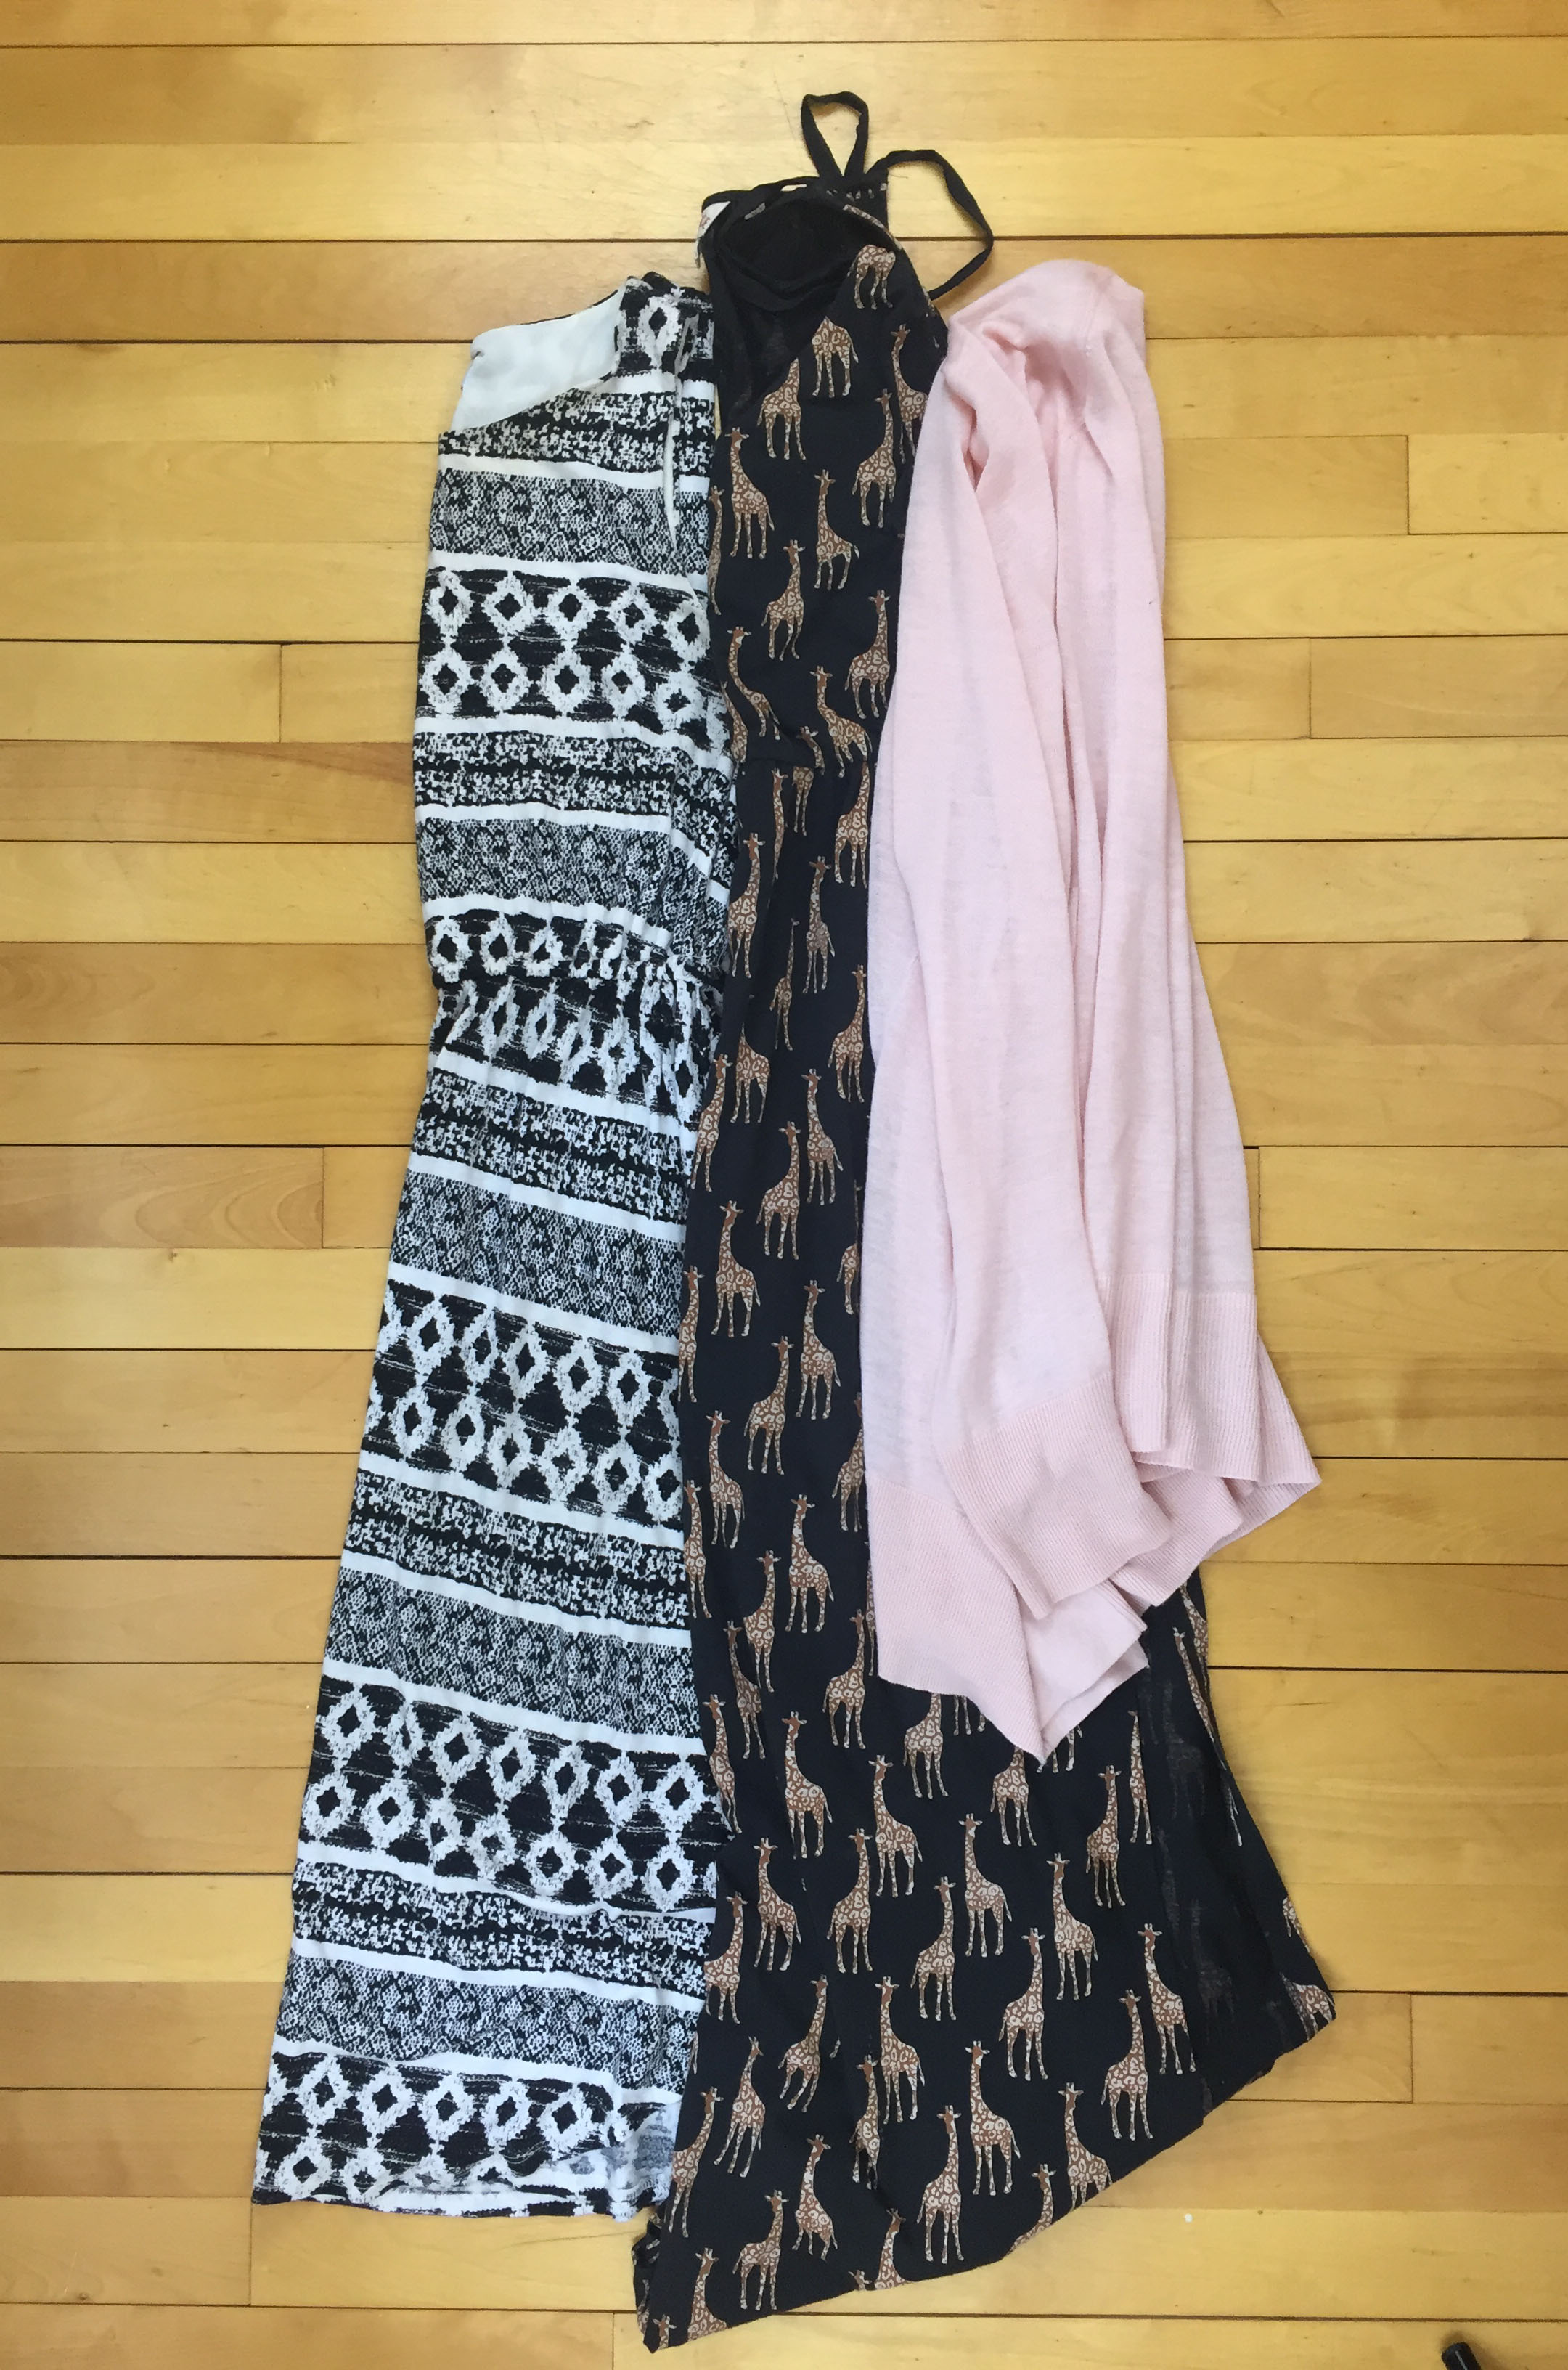 Dresses and Cardigans - 1 week in a Carry-On